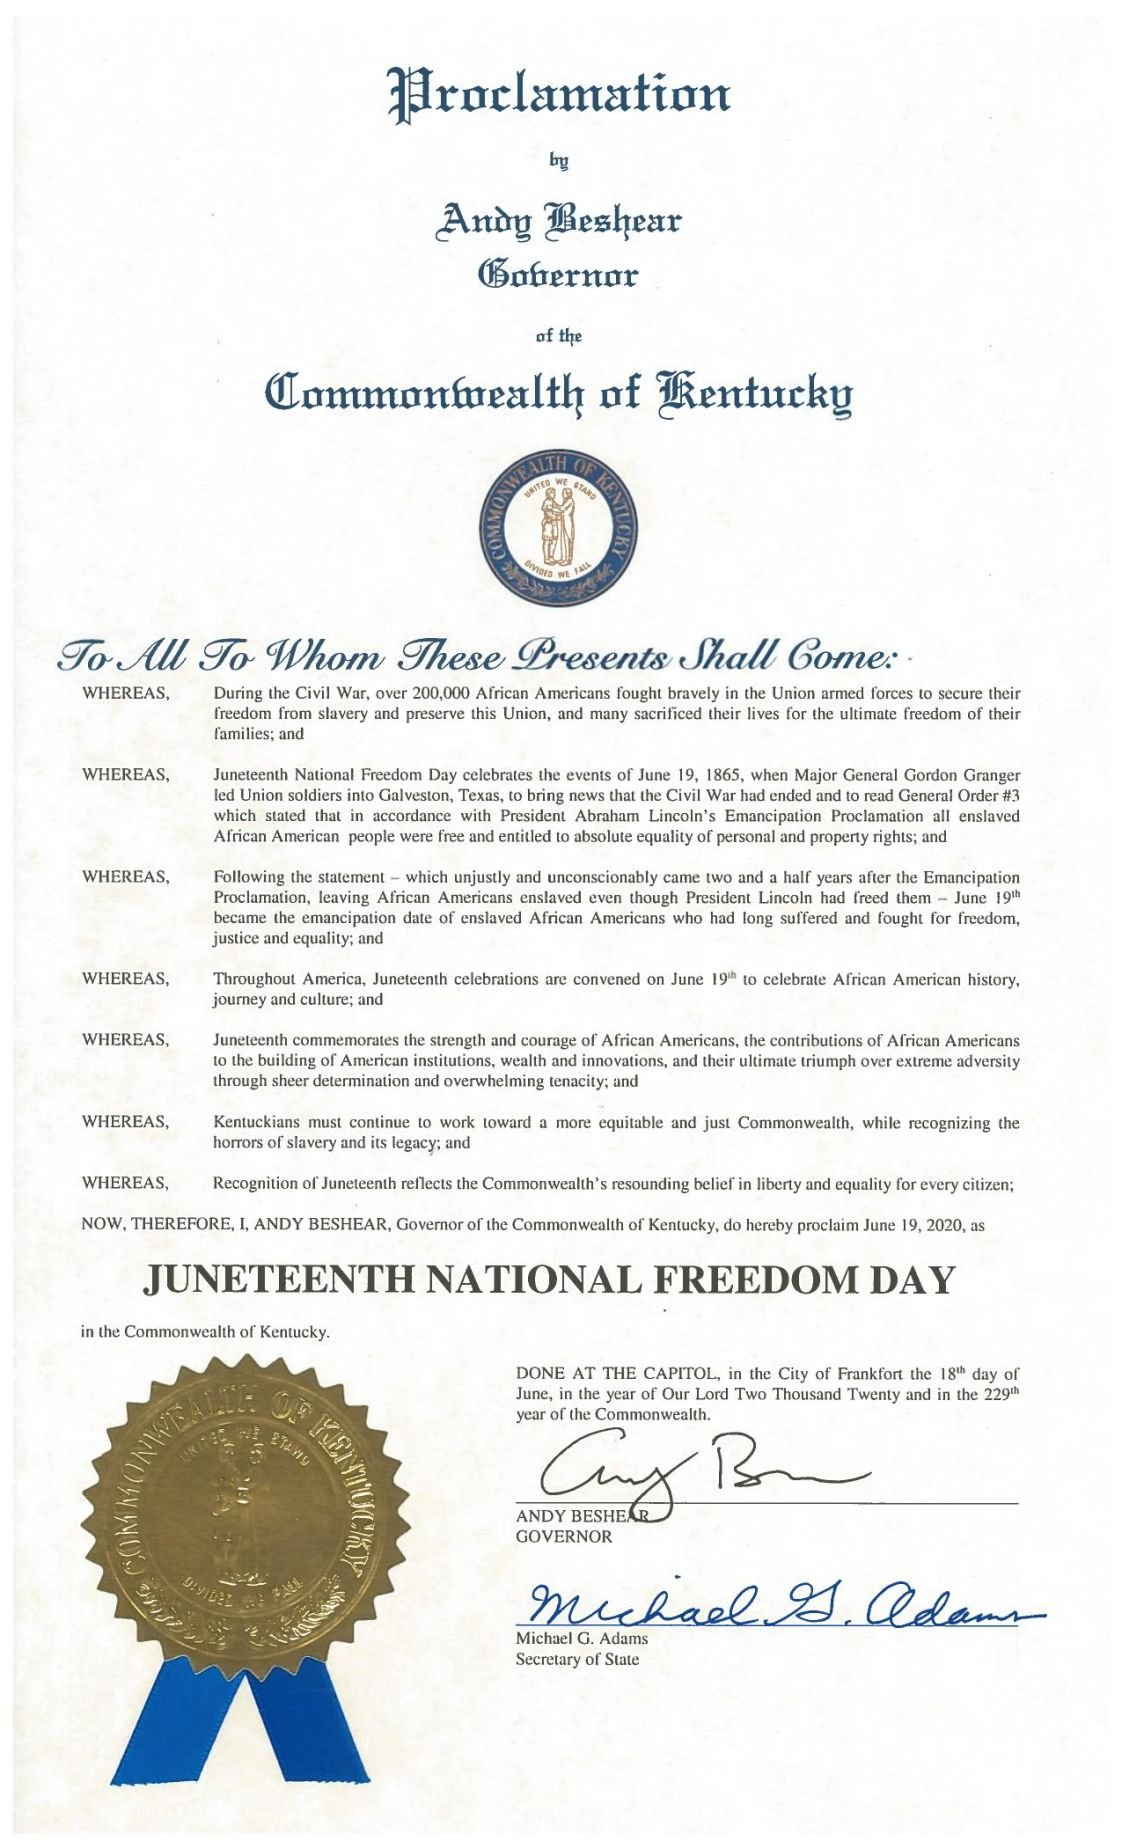 Ky. Governor Juneteenth 2020 Proclamation